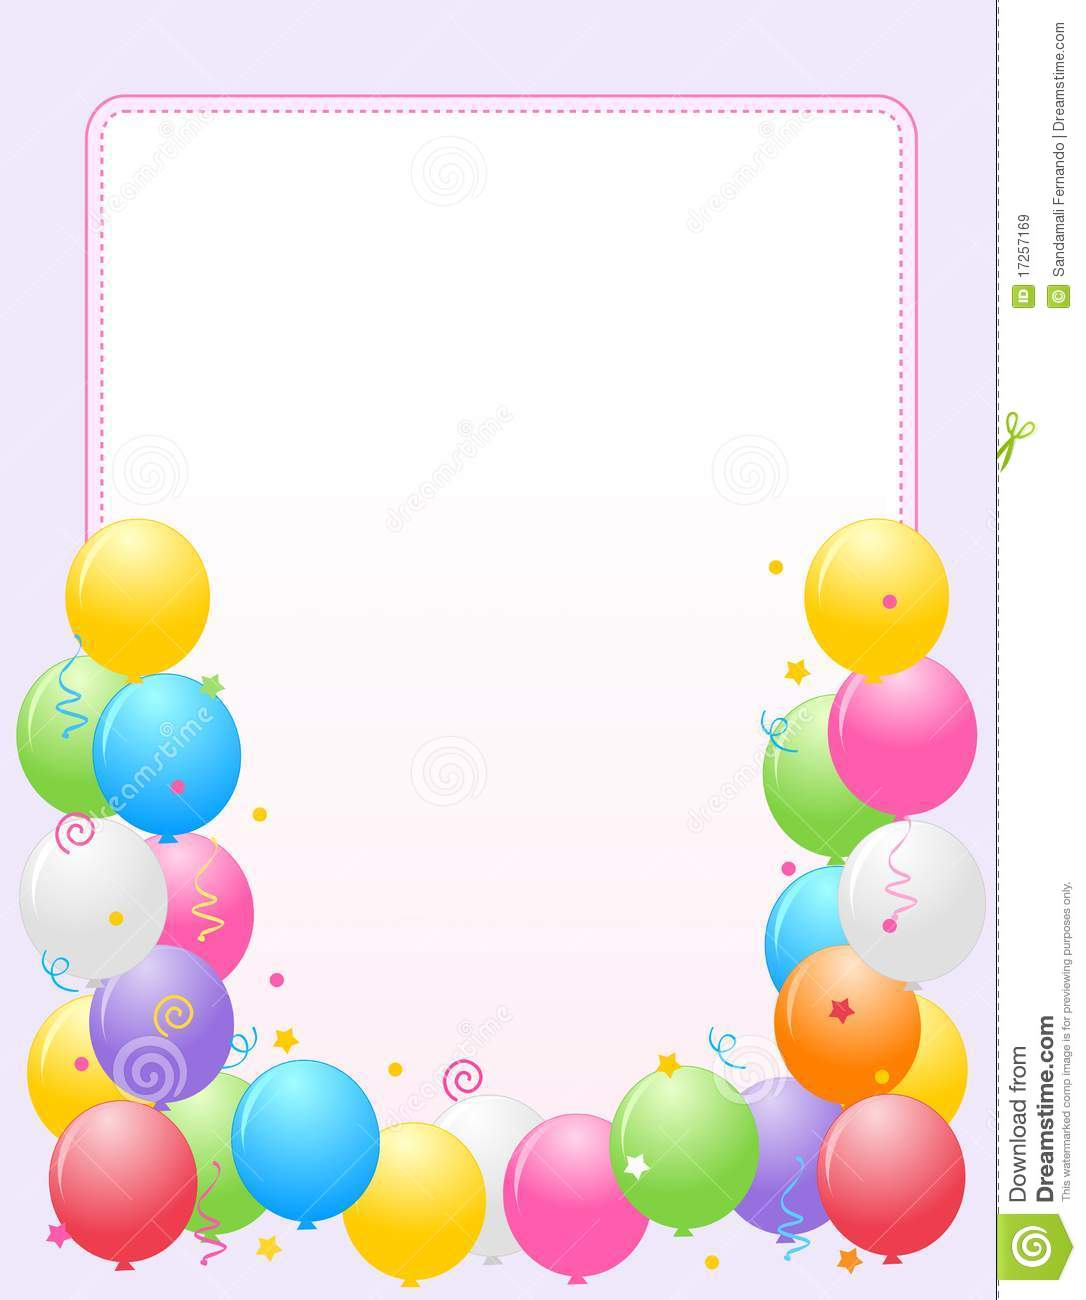 birthday party invitation borders ; colorful-balloons-border-party-frame-17257169